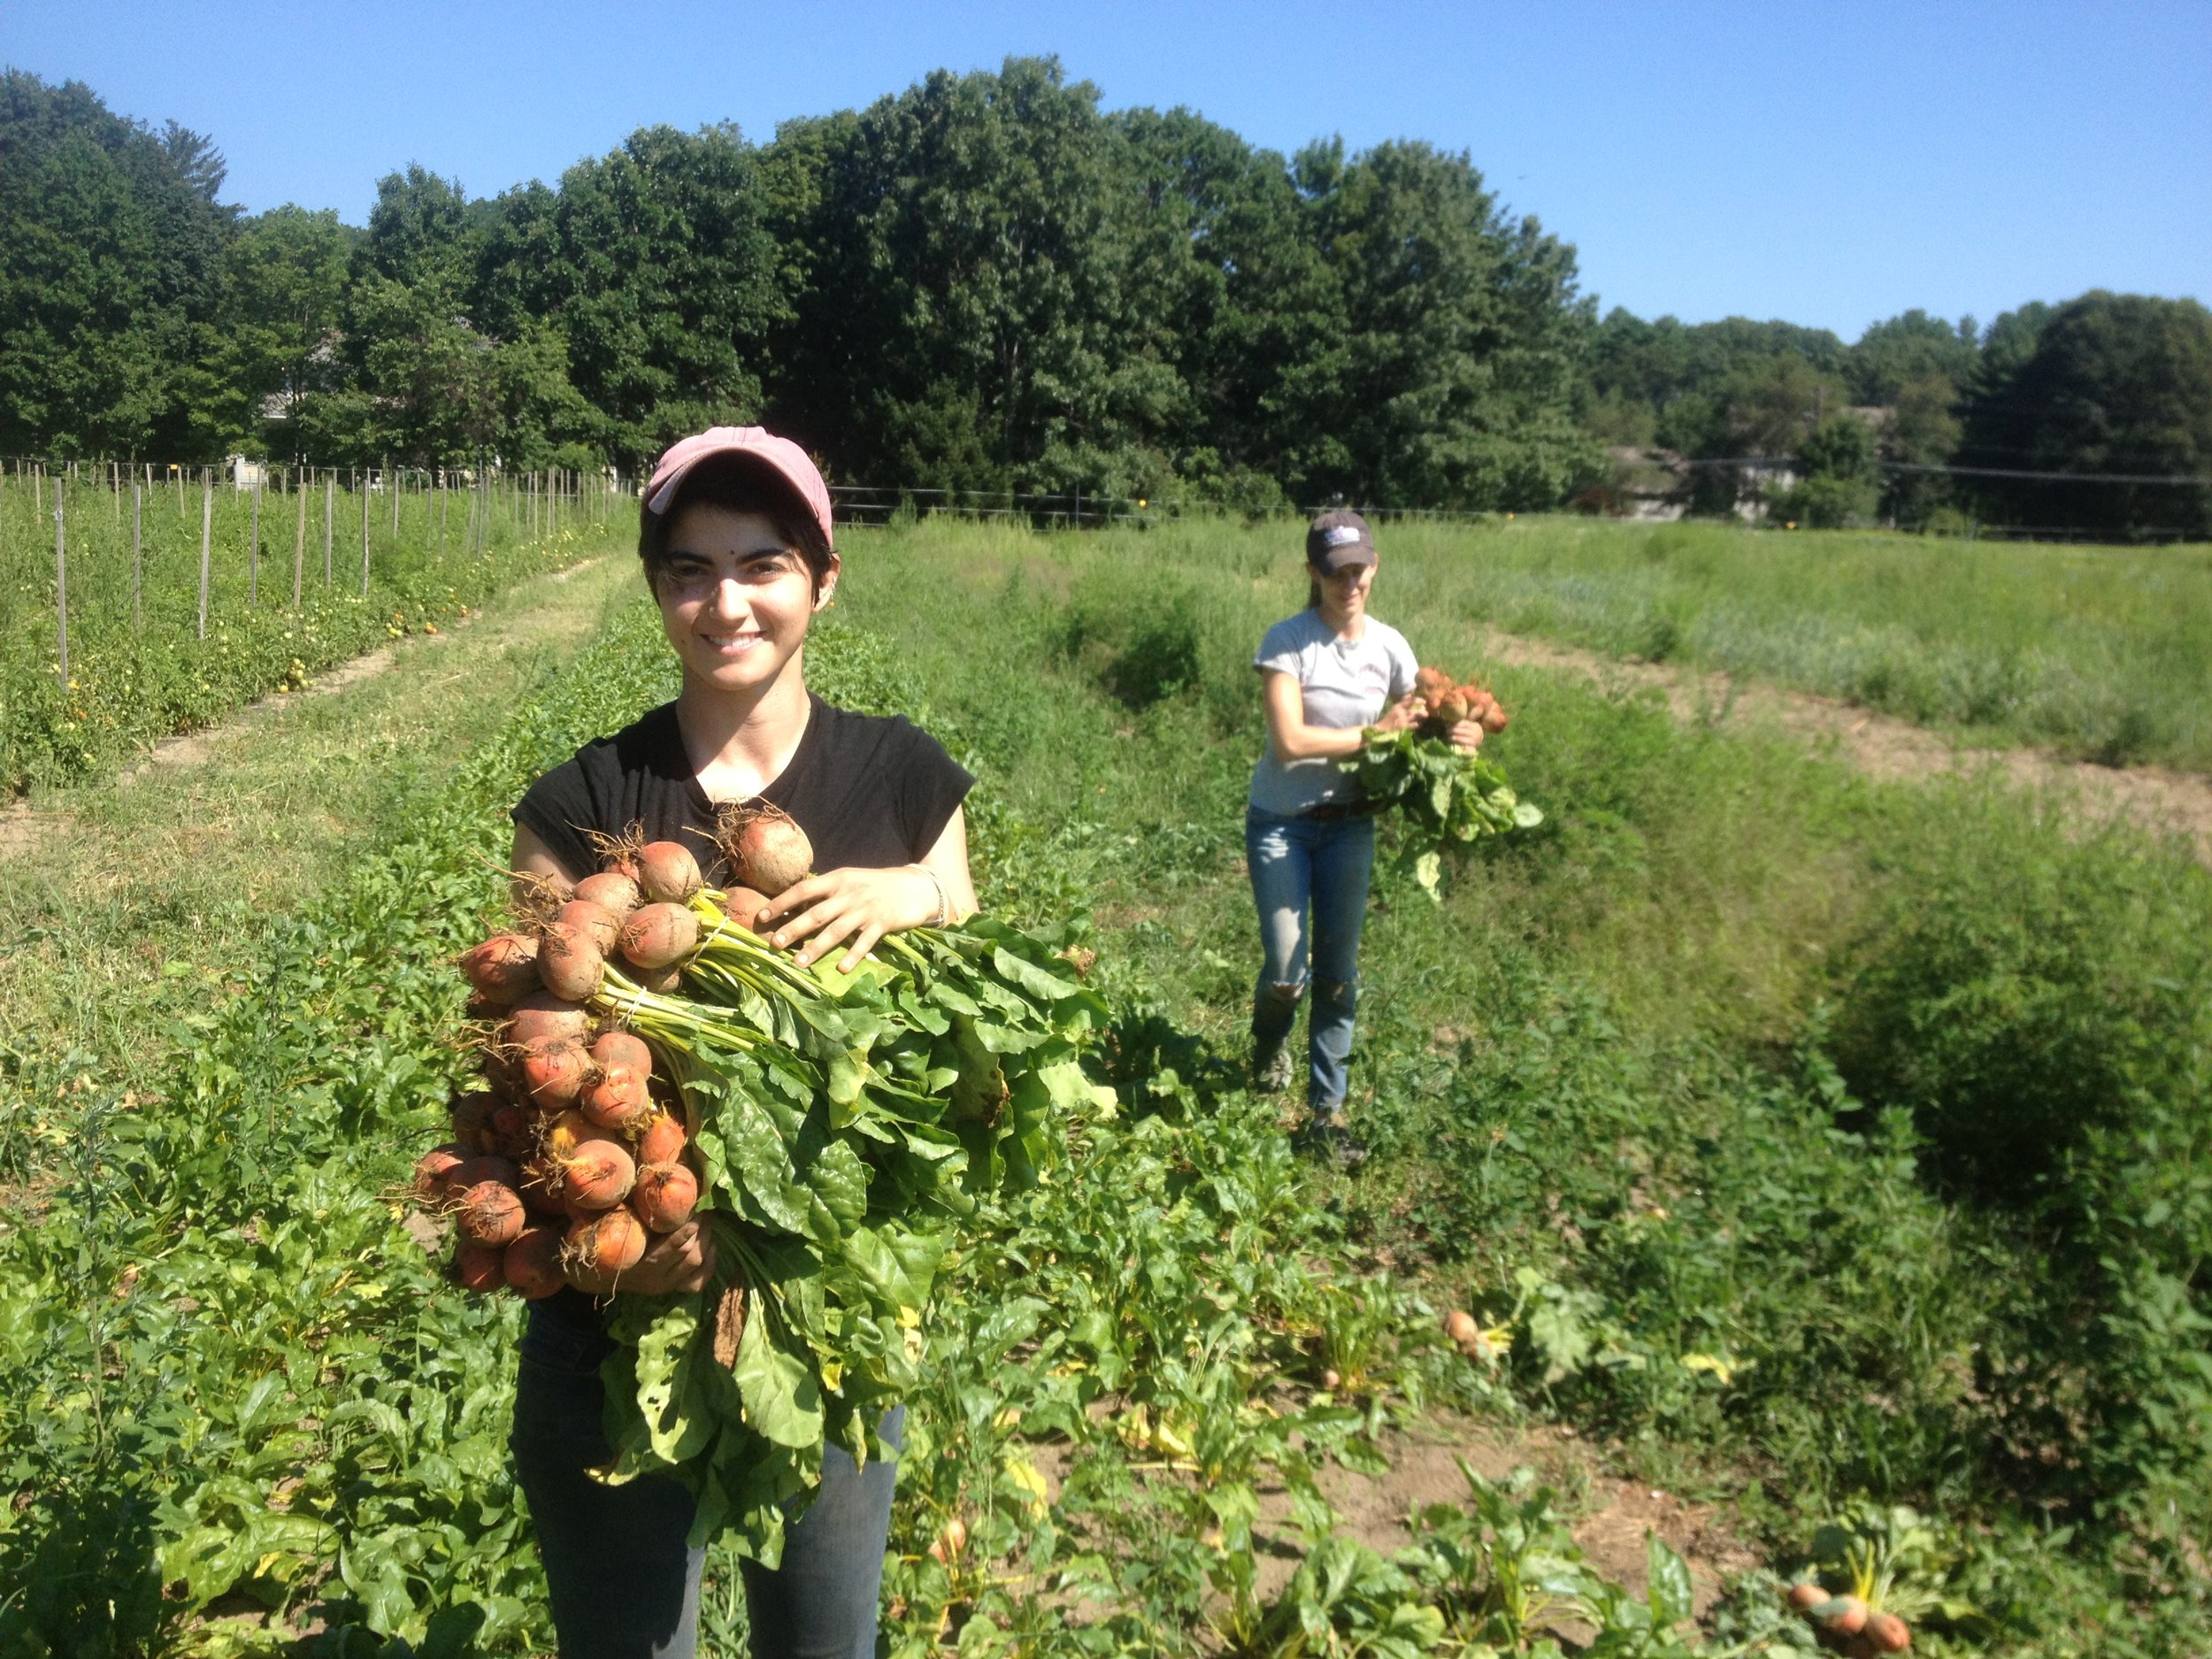 Miranda and Erica harvest golden beets.